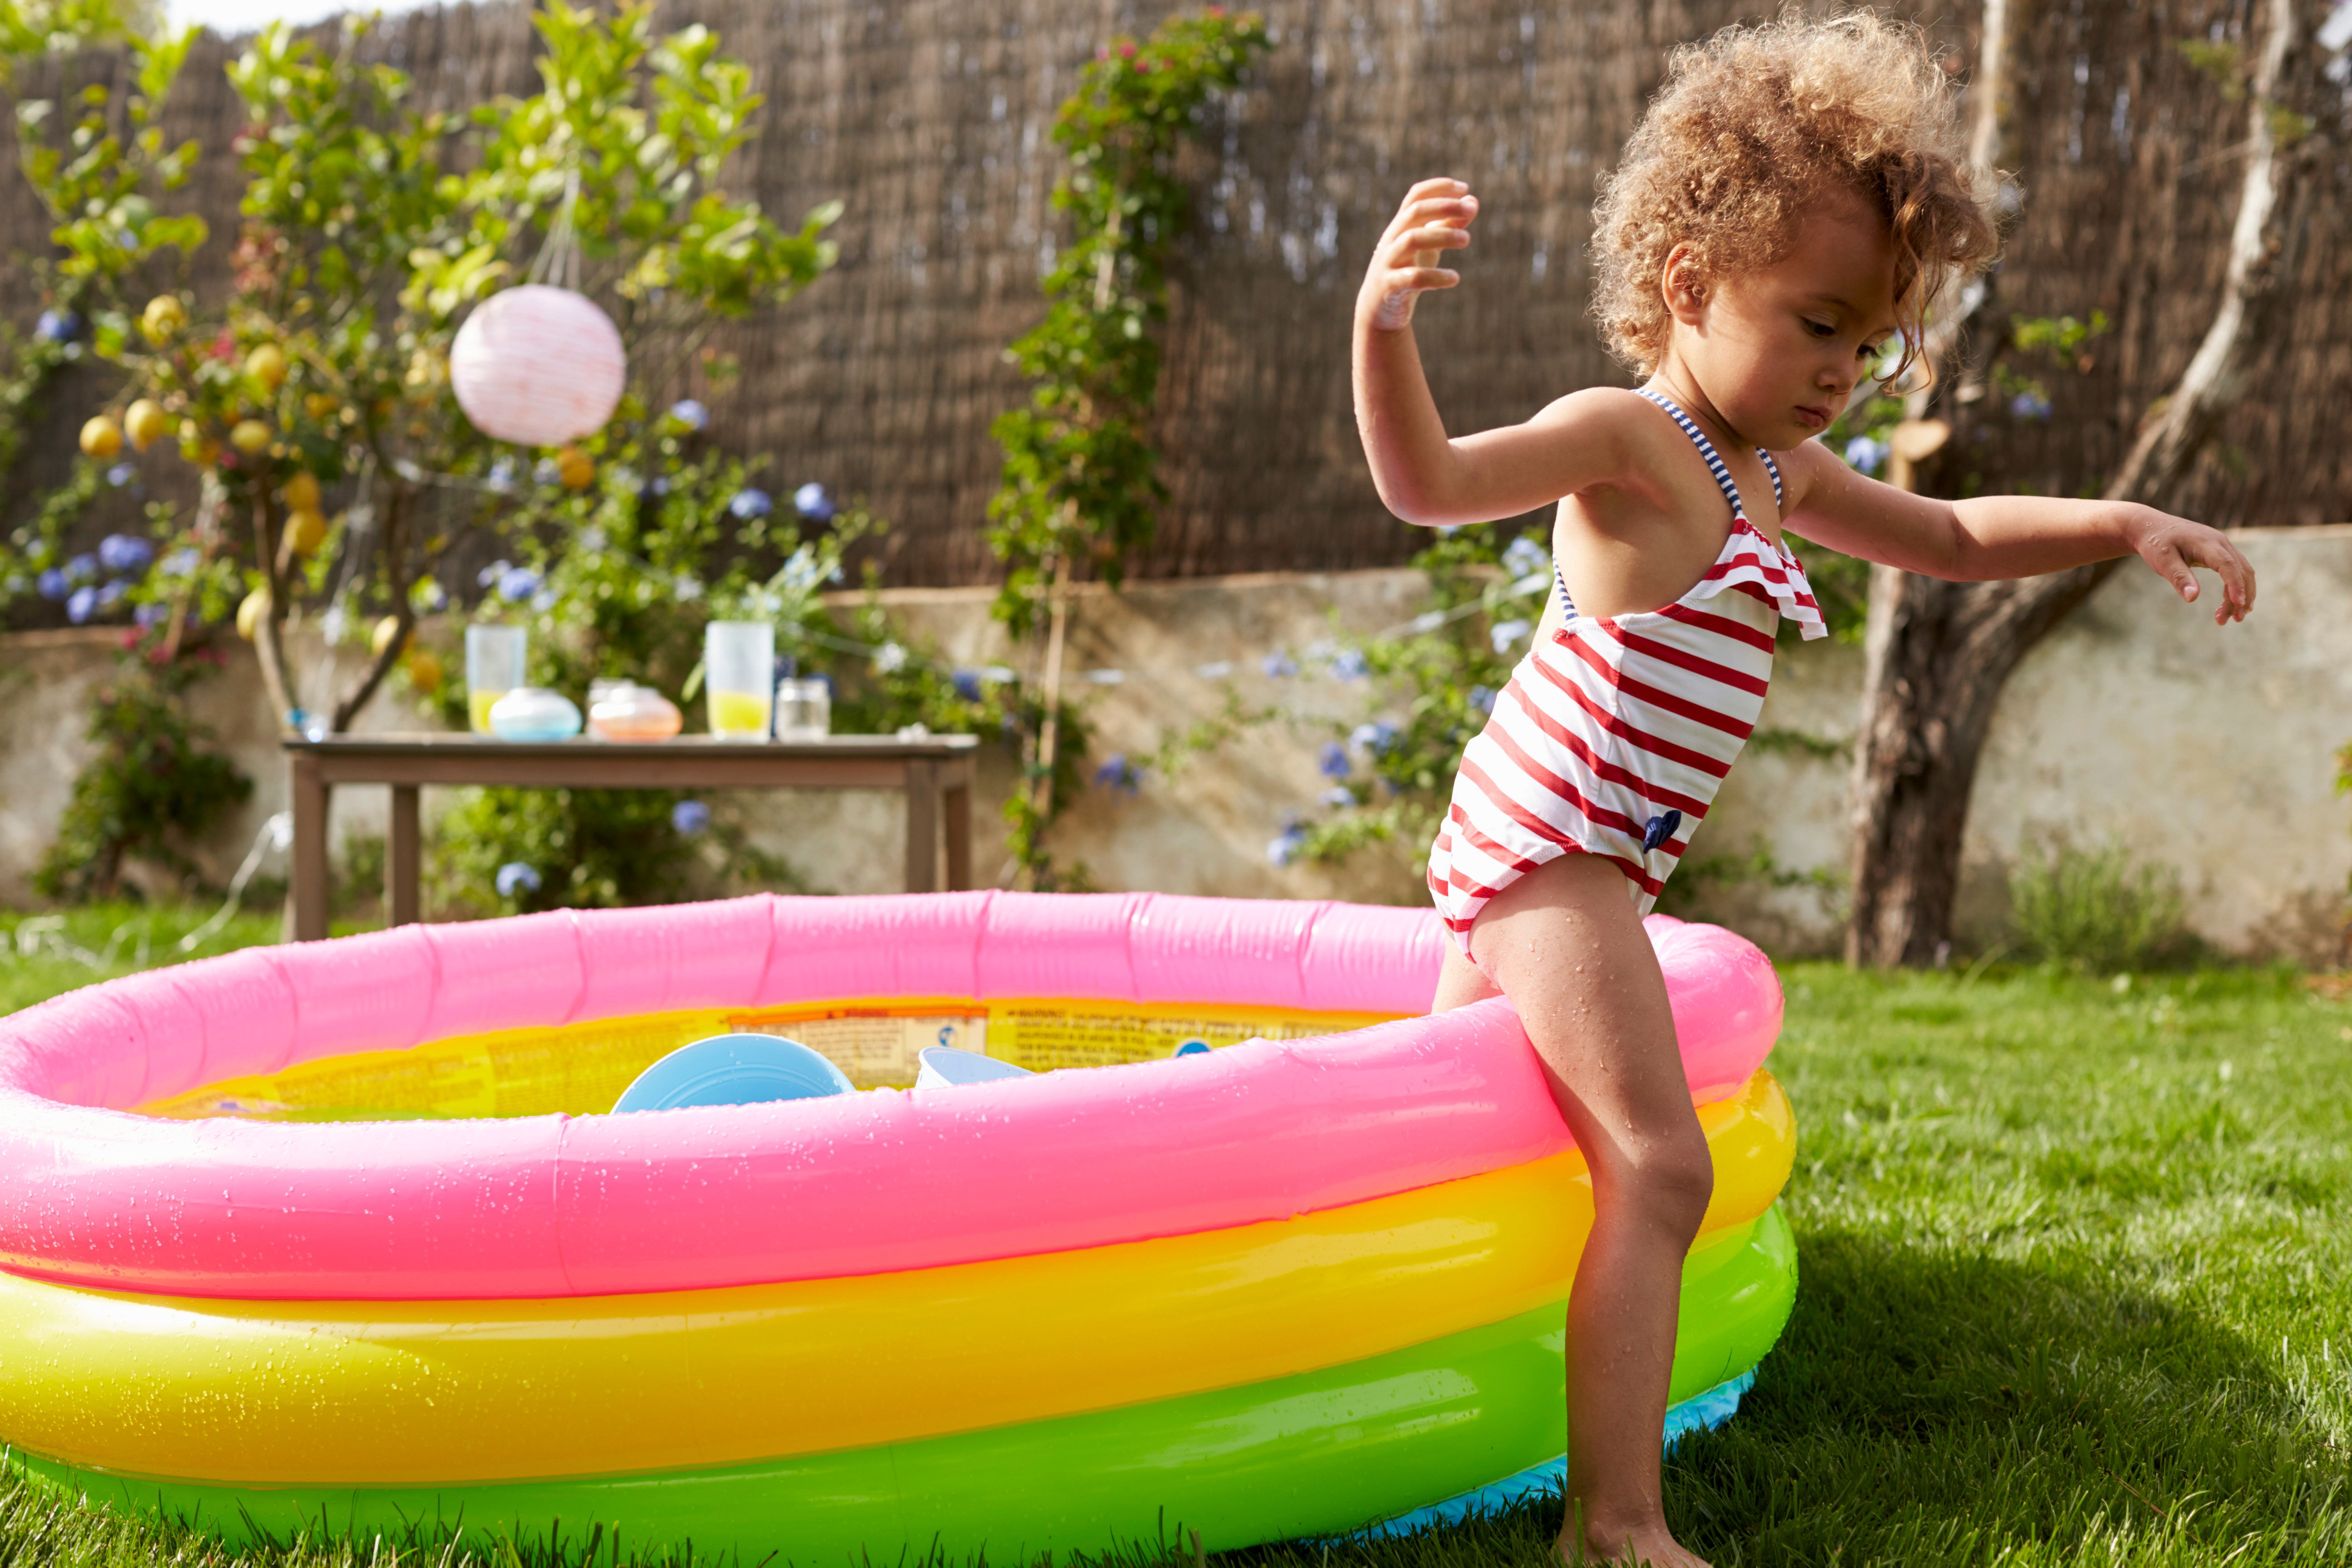 How To Avoid Refilling Your Paddling Pool Every Day